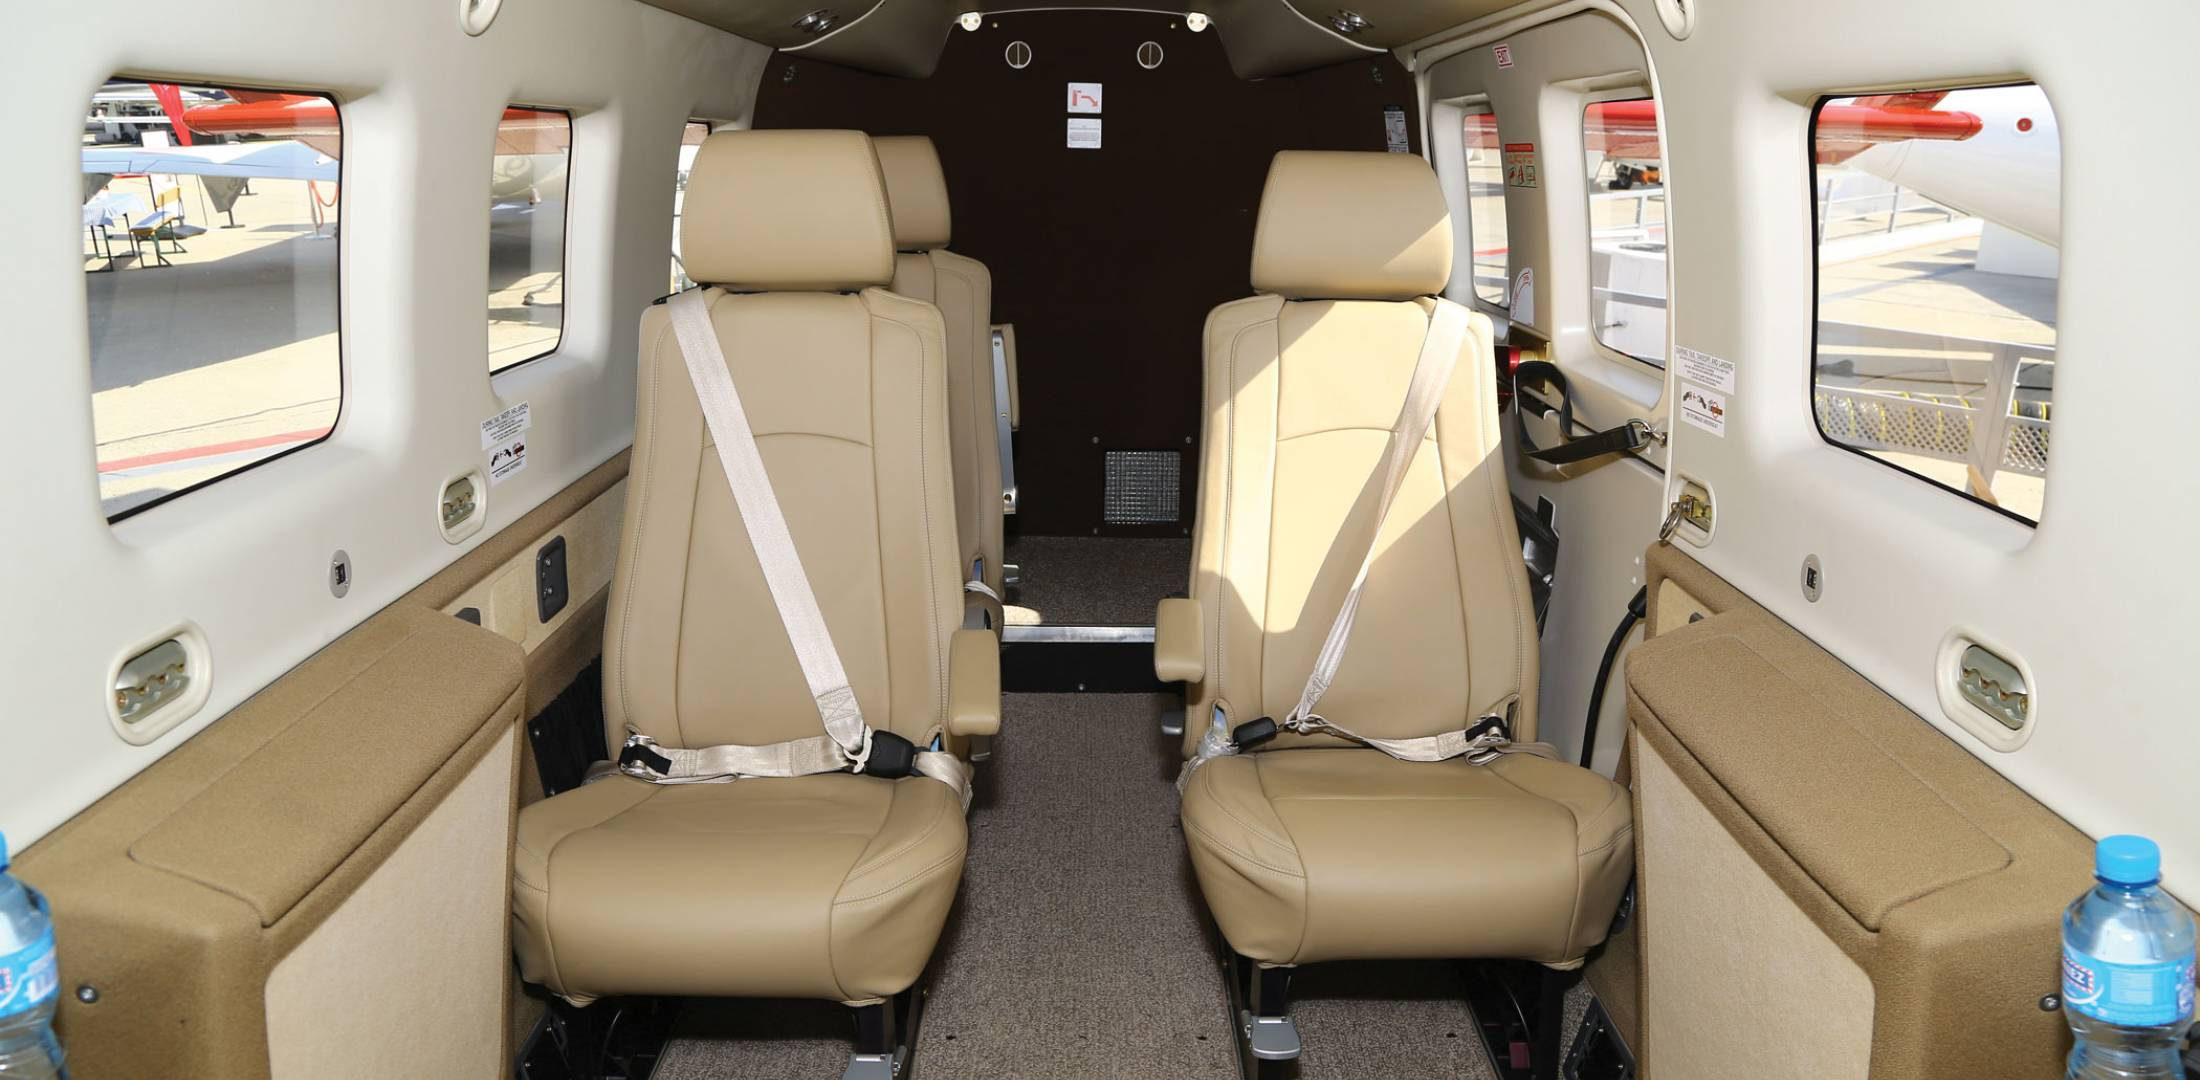 Kodiak Here with Executive Cabin Interior   Business Aviation News     The external cargo pod and oversize utility tires do little to suggest the  Kodiak s Summit executive interior with reclining seats and folding tables